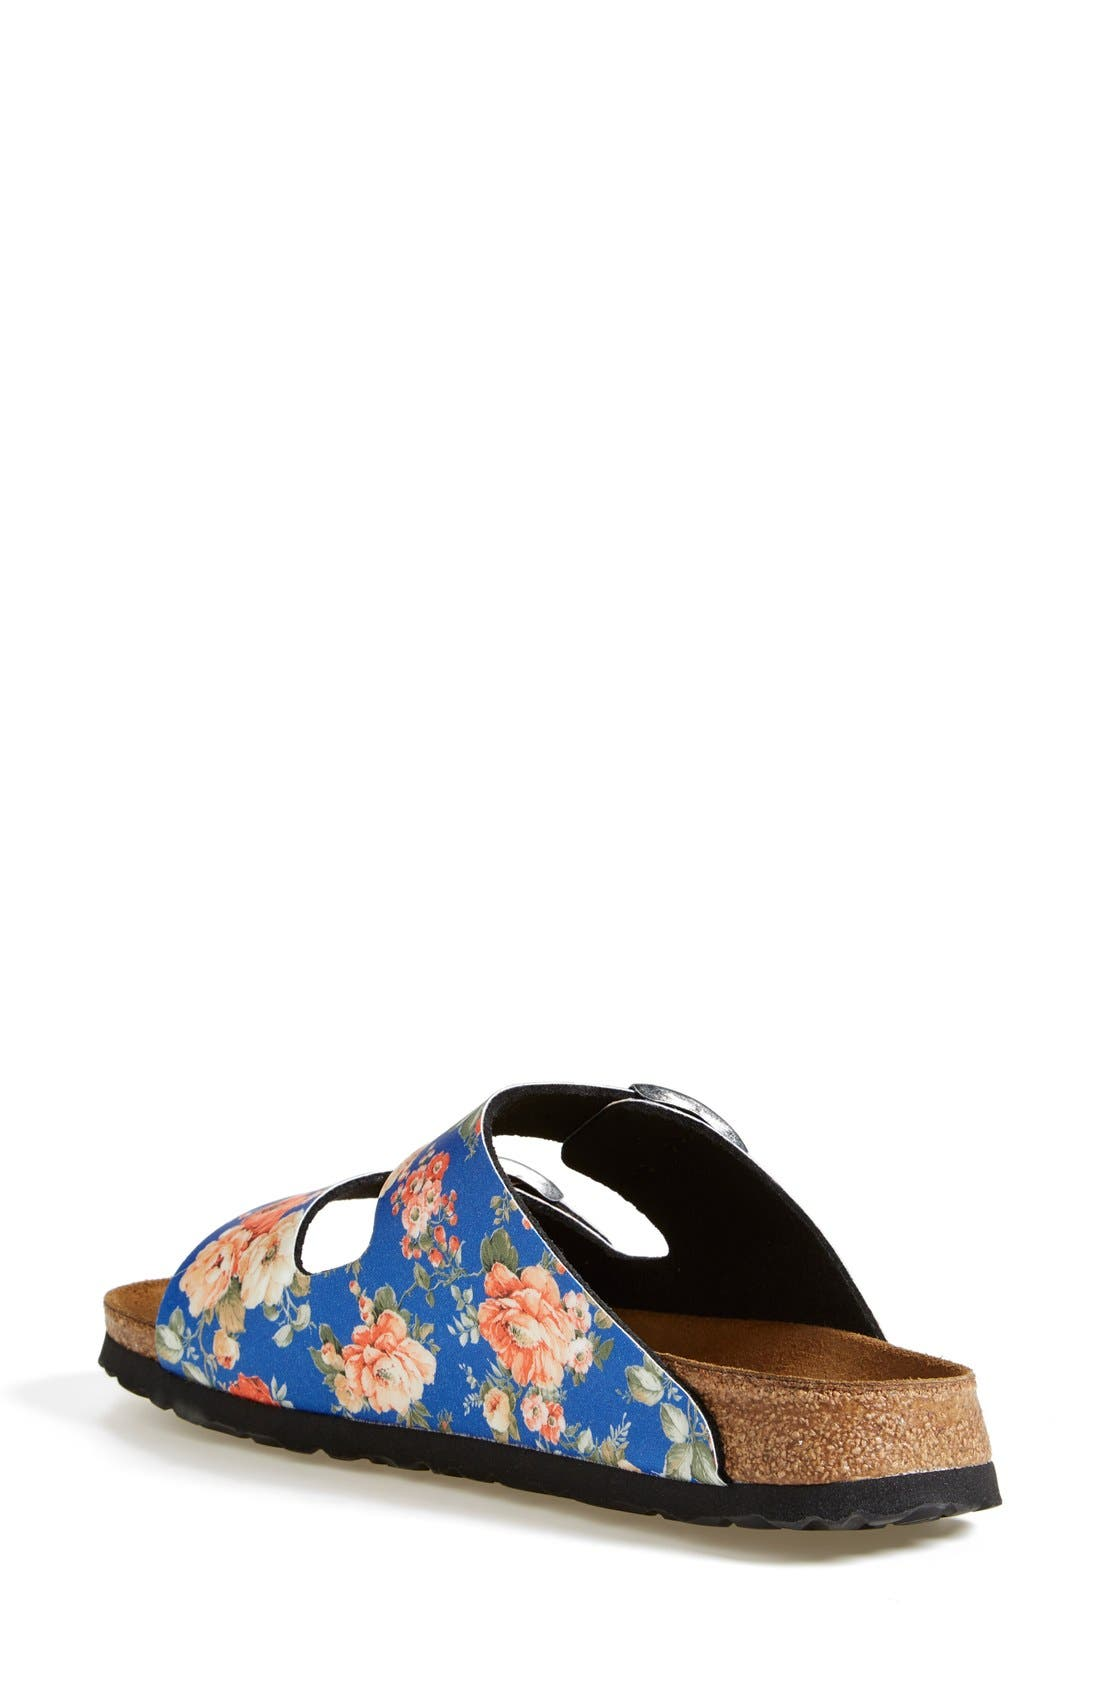 Alternate Image 2  - Birkenstock 'Arizona' Floral Print Sandal (Women)